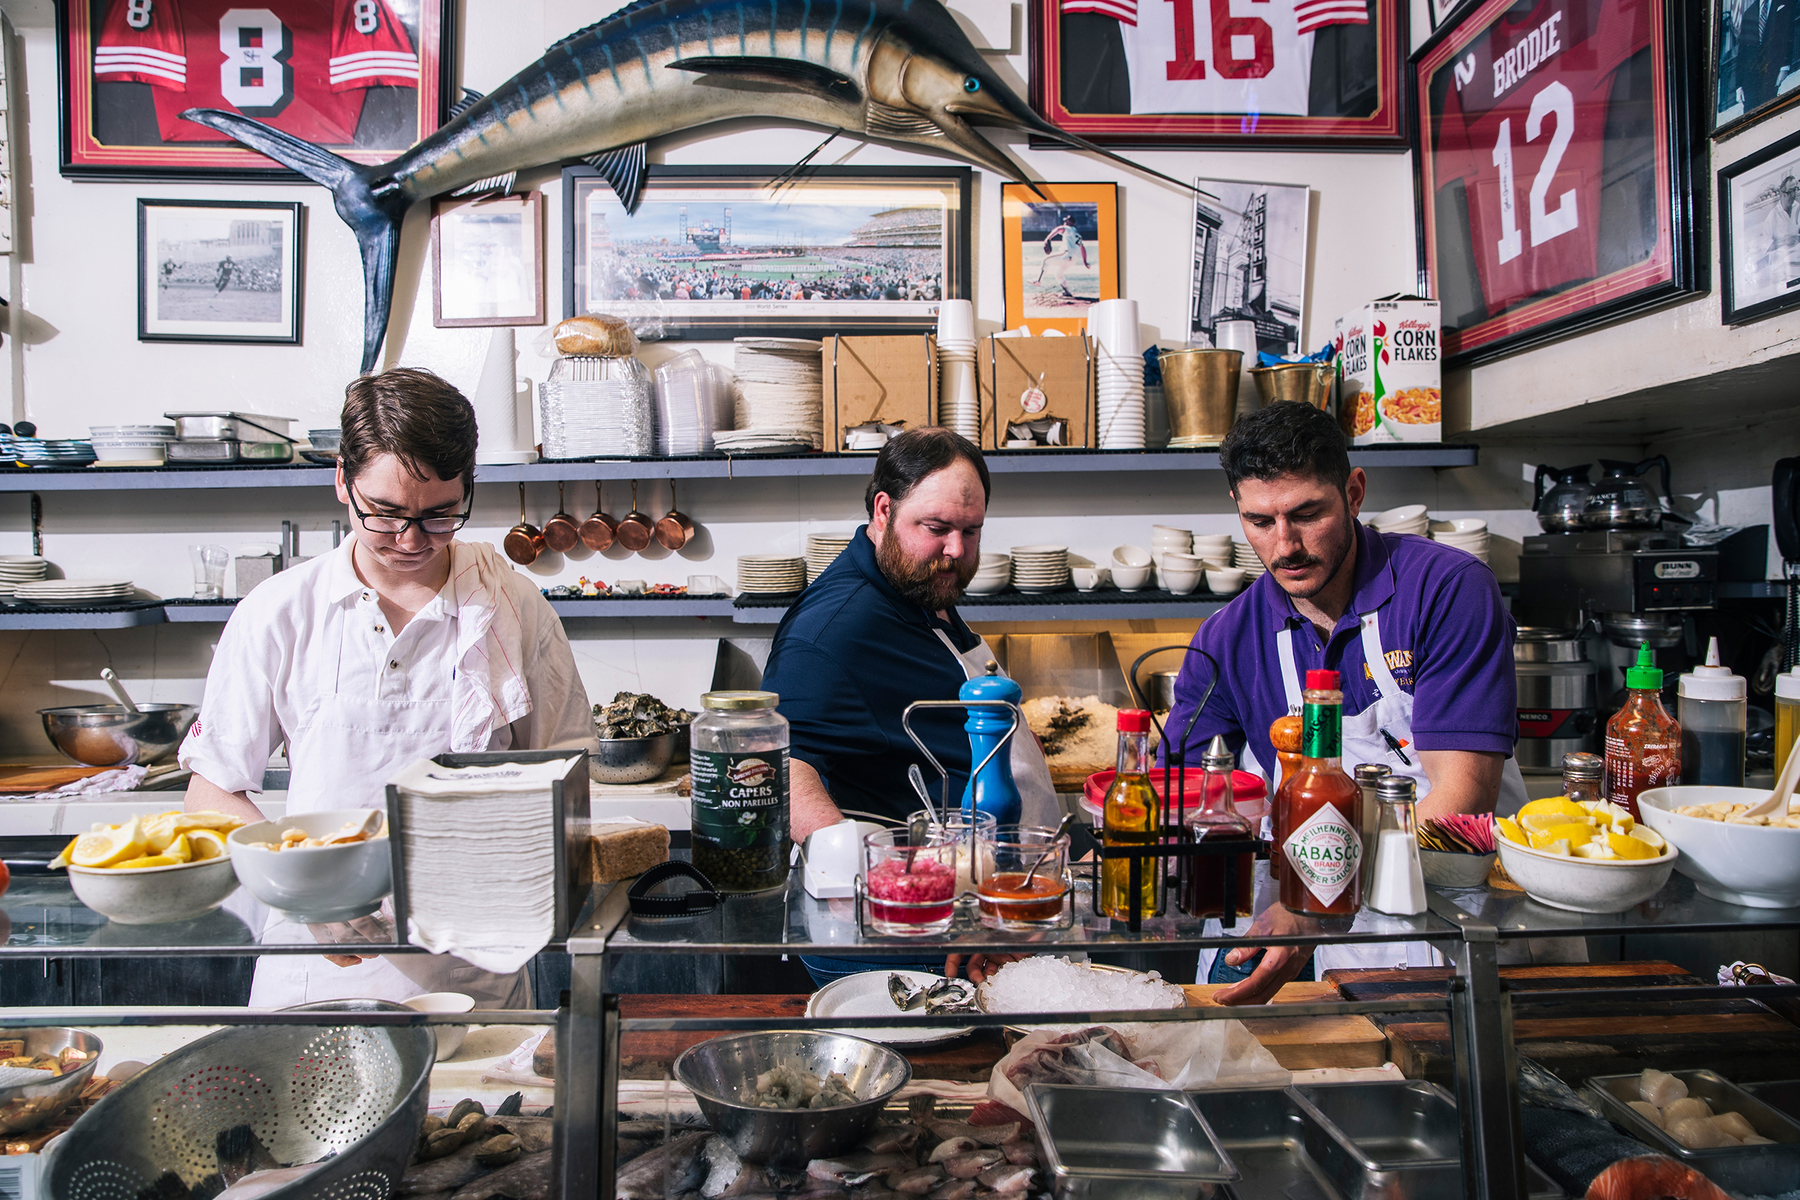 From left, Brian Dwyer, Erik Wideman, and Marino Peradotto prepares seafood before service at Swan Oyster Depot in San Francisco, Calif. on Tuesday, April 2, 2019.